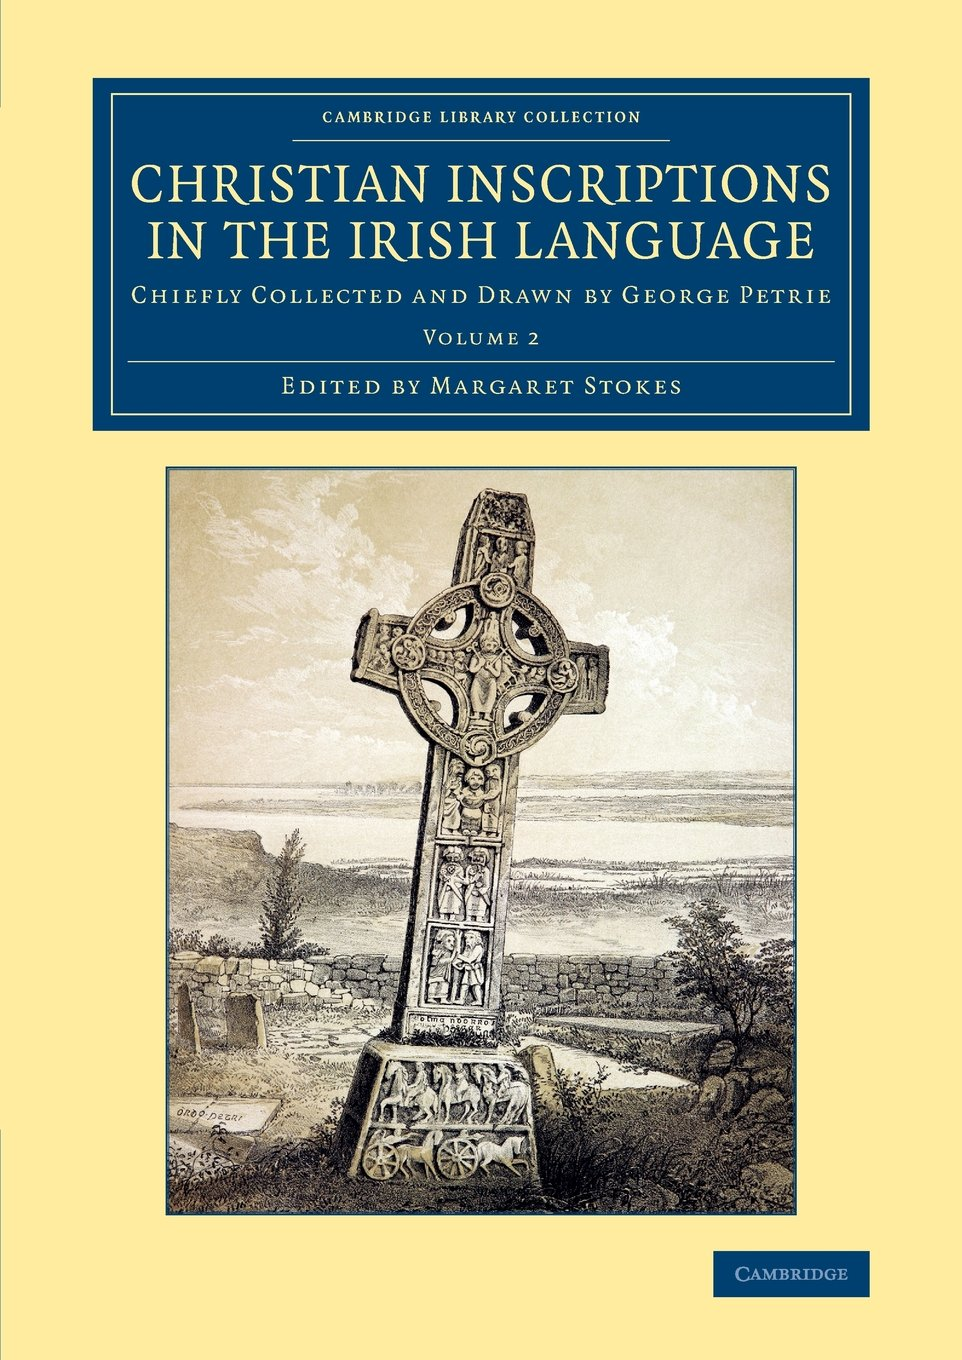 Christian Inscriptions in the Irish Language: Chiefly Collected and Drawn by George Petrie (Cambridge Library Collection - Archaeology) (Volume 2) by Cambridge University Press